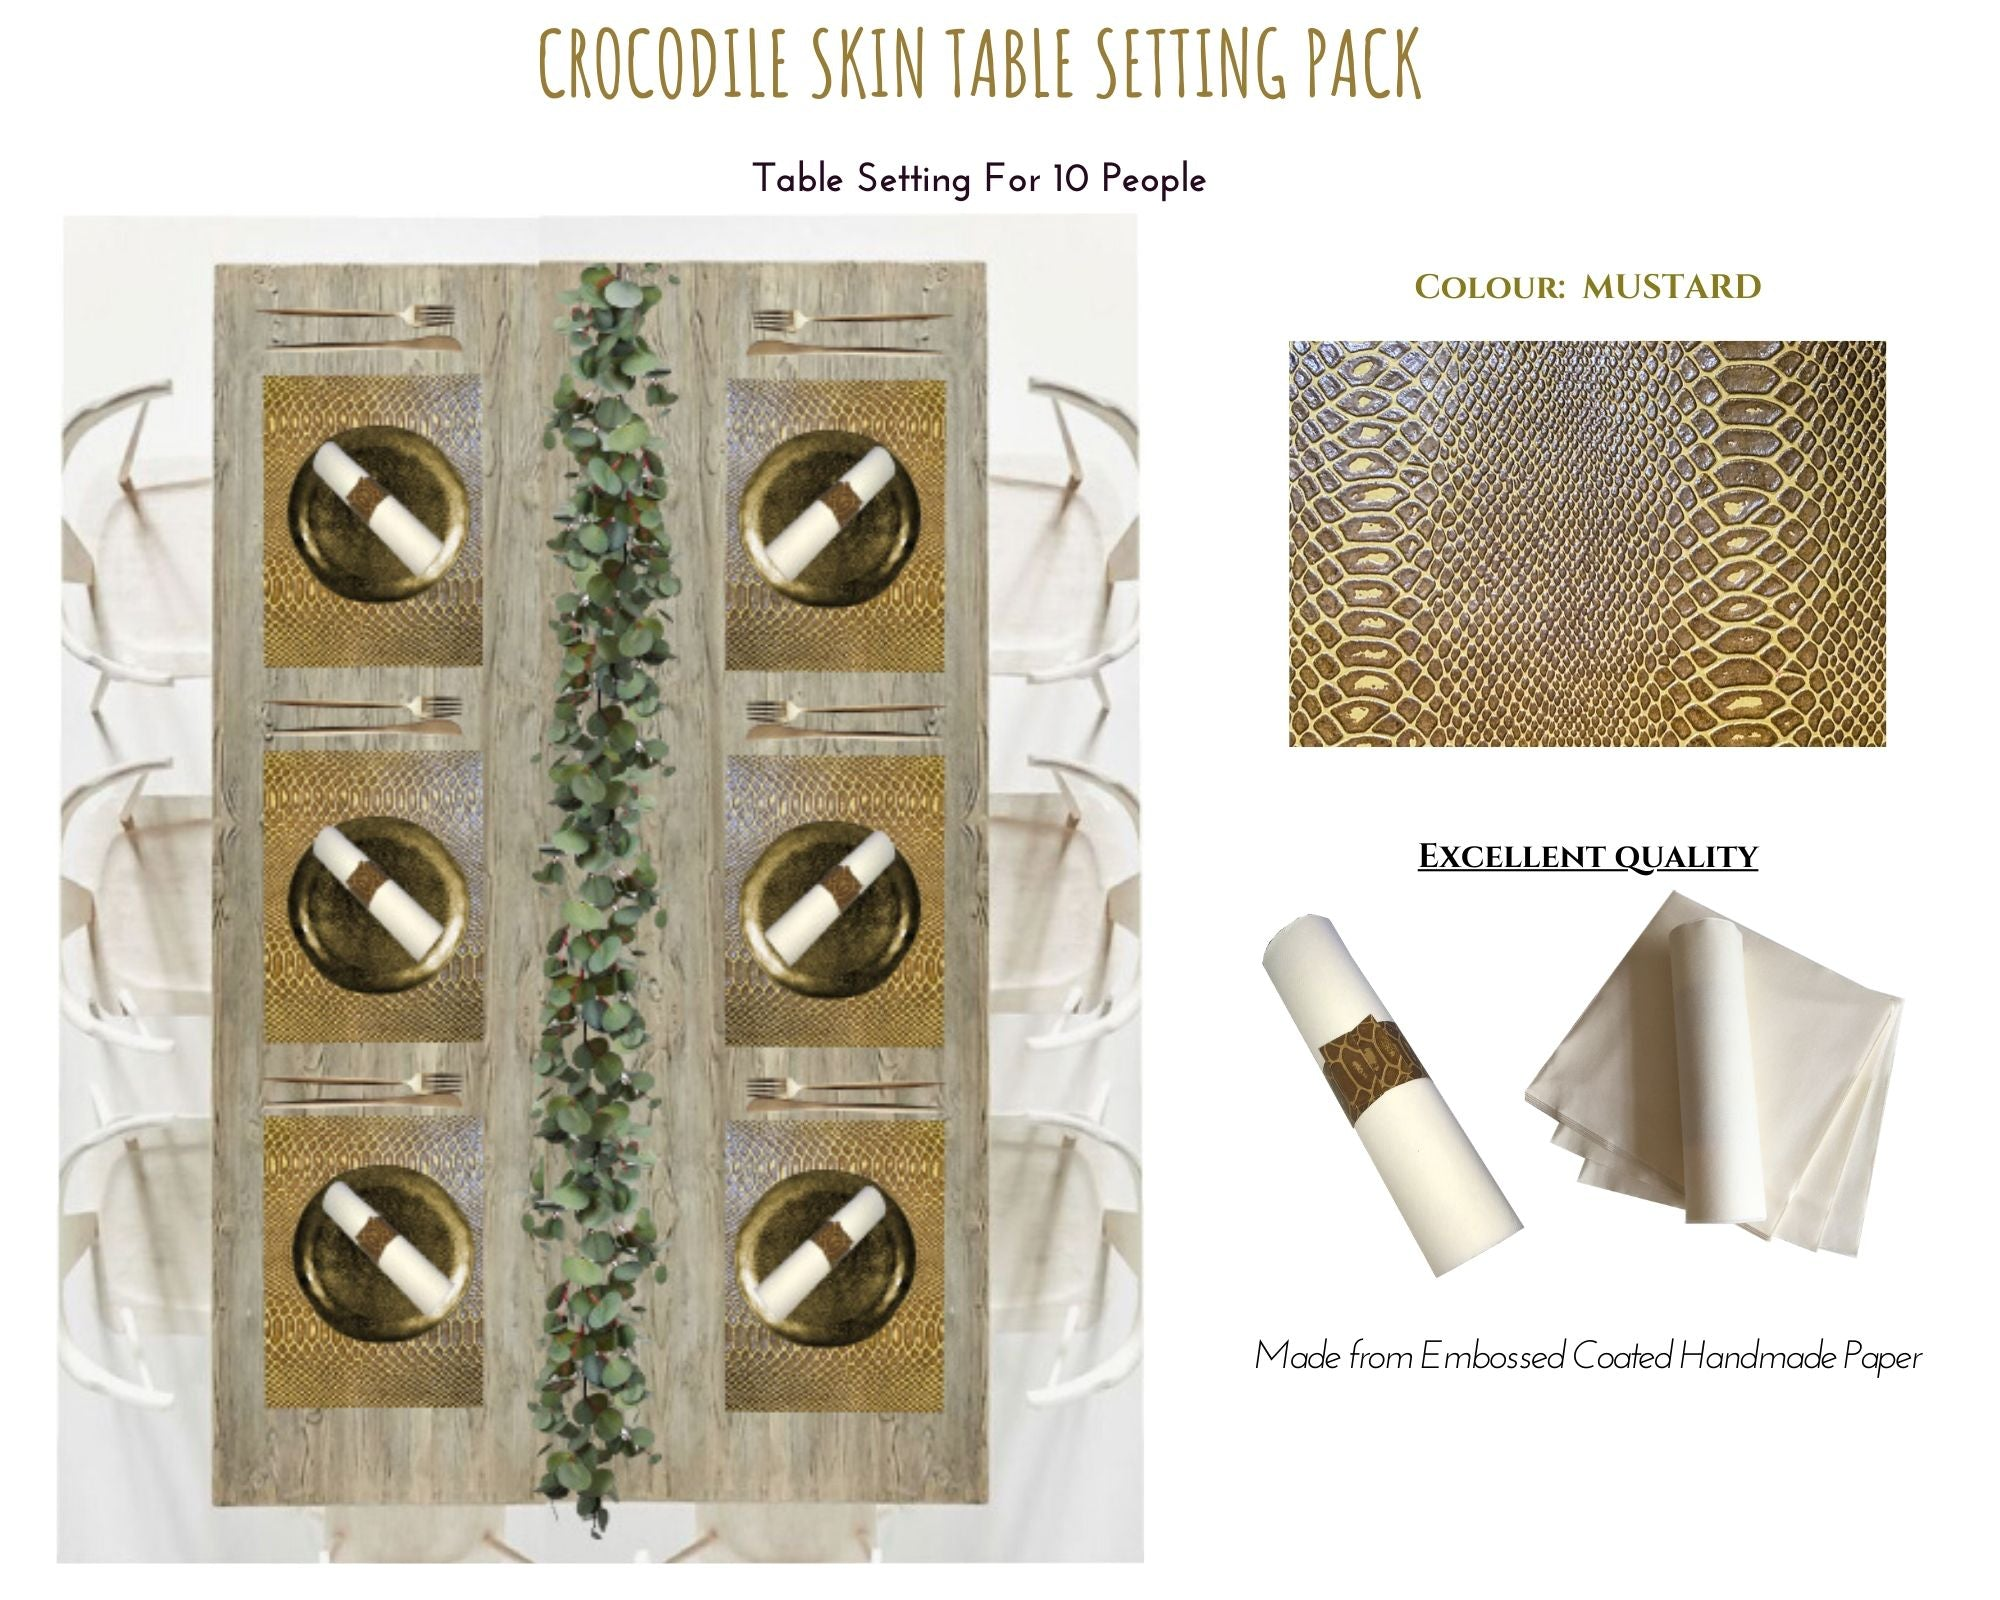 Faux Croc Design Paper Crocodile Skin Table Setting Pack - Place Matters